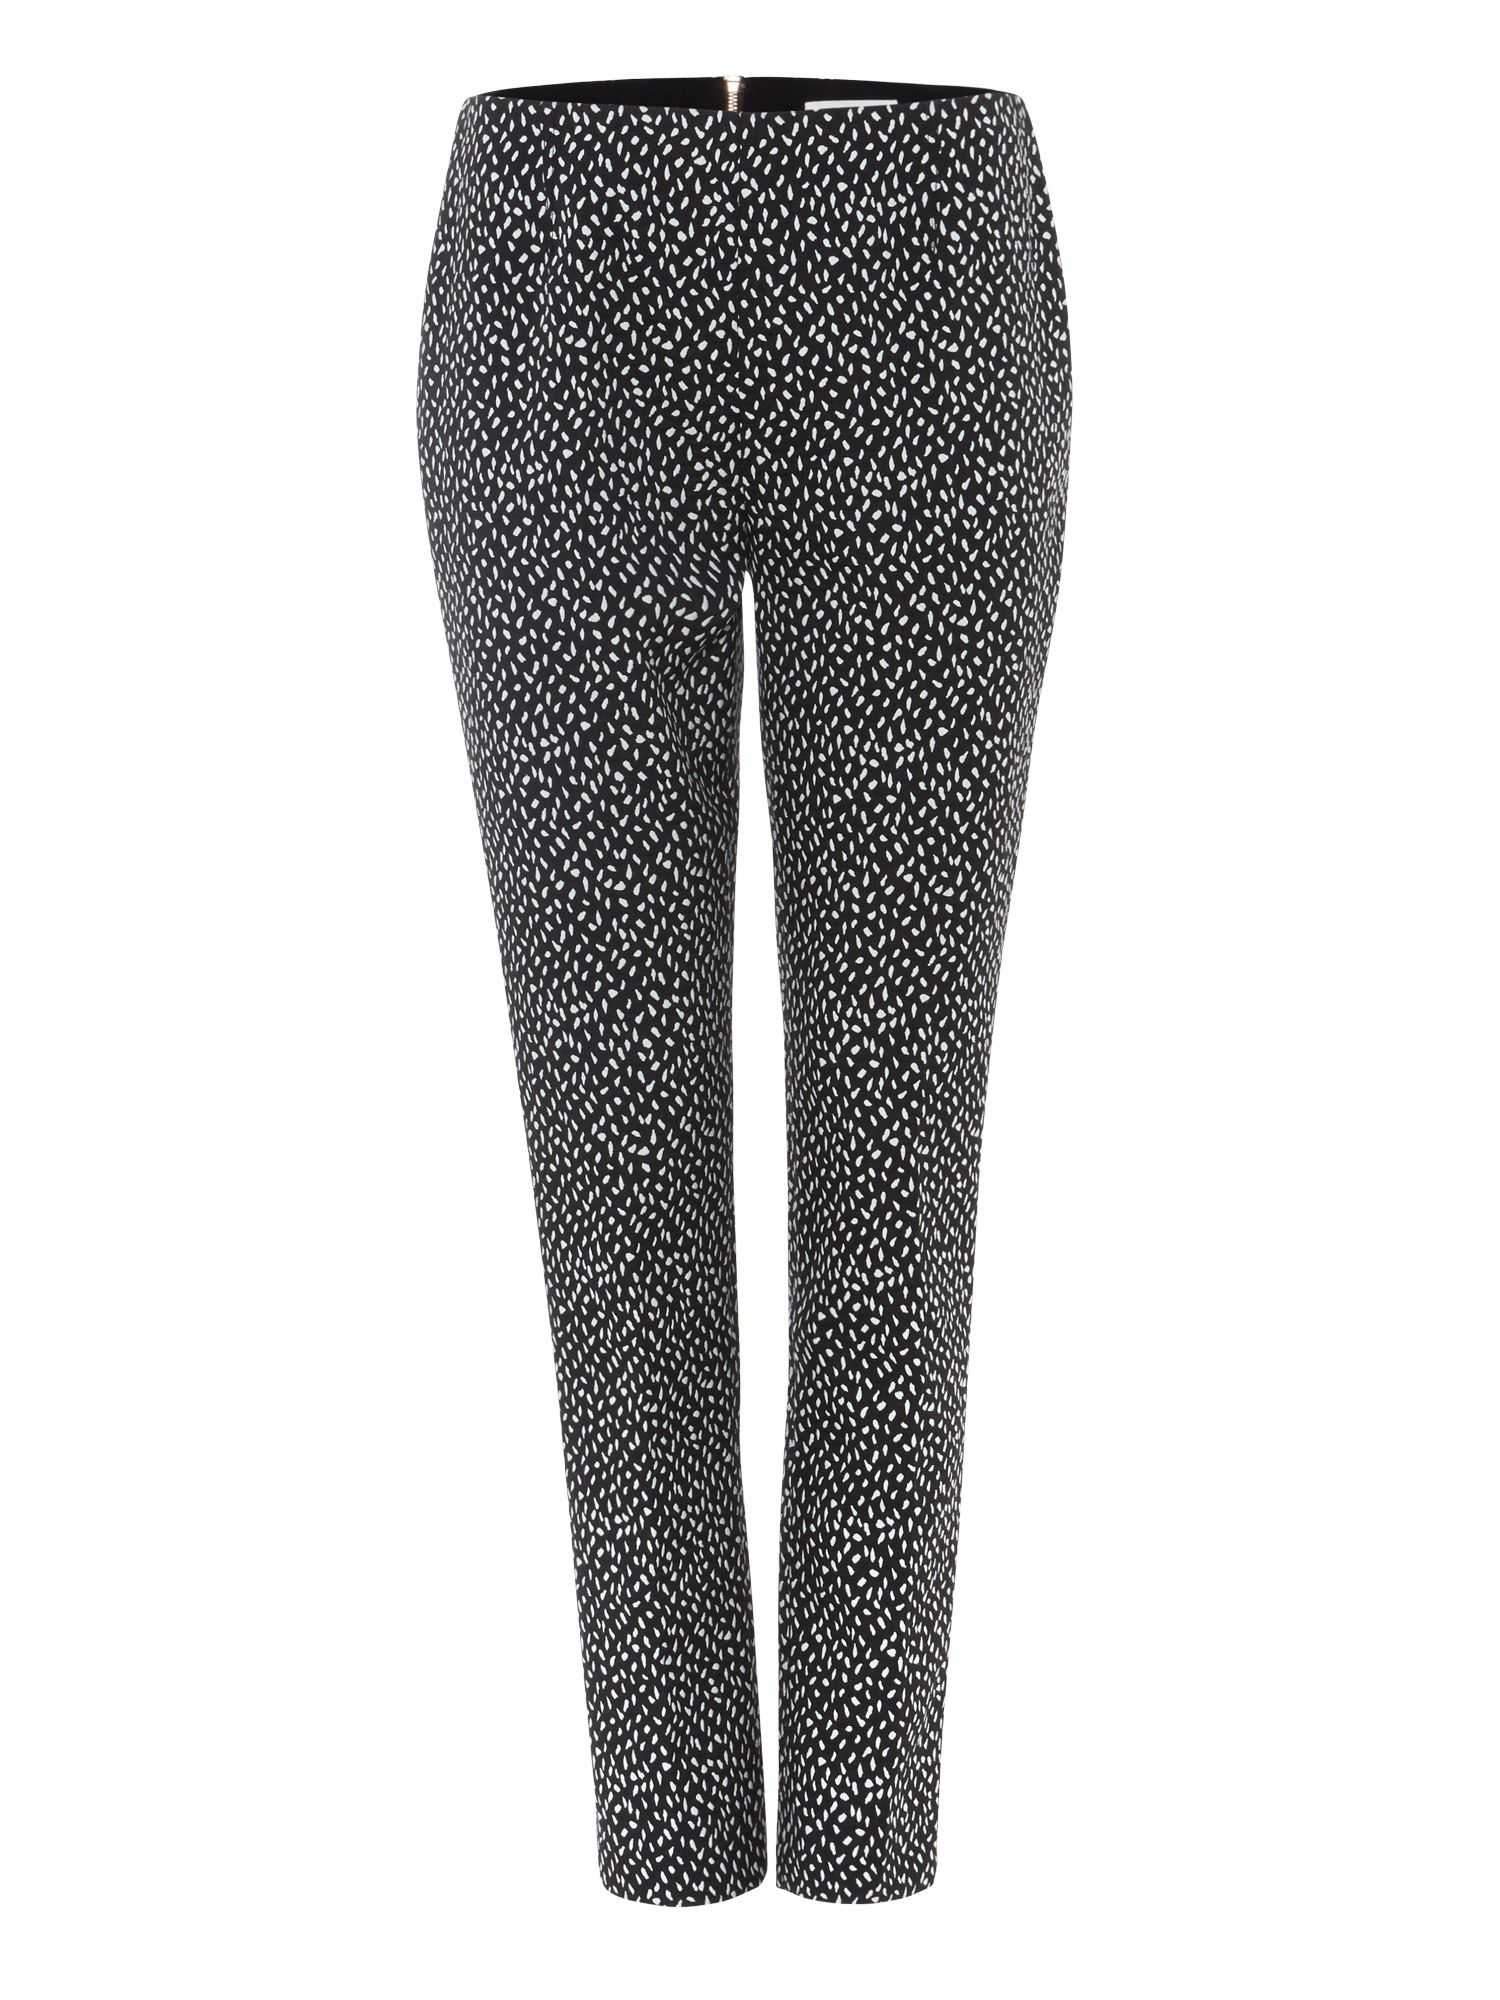 Damsel in a Dress Tribe Jacquard Trousers, Black